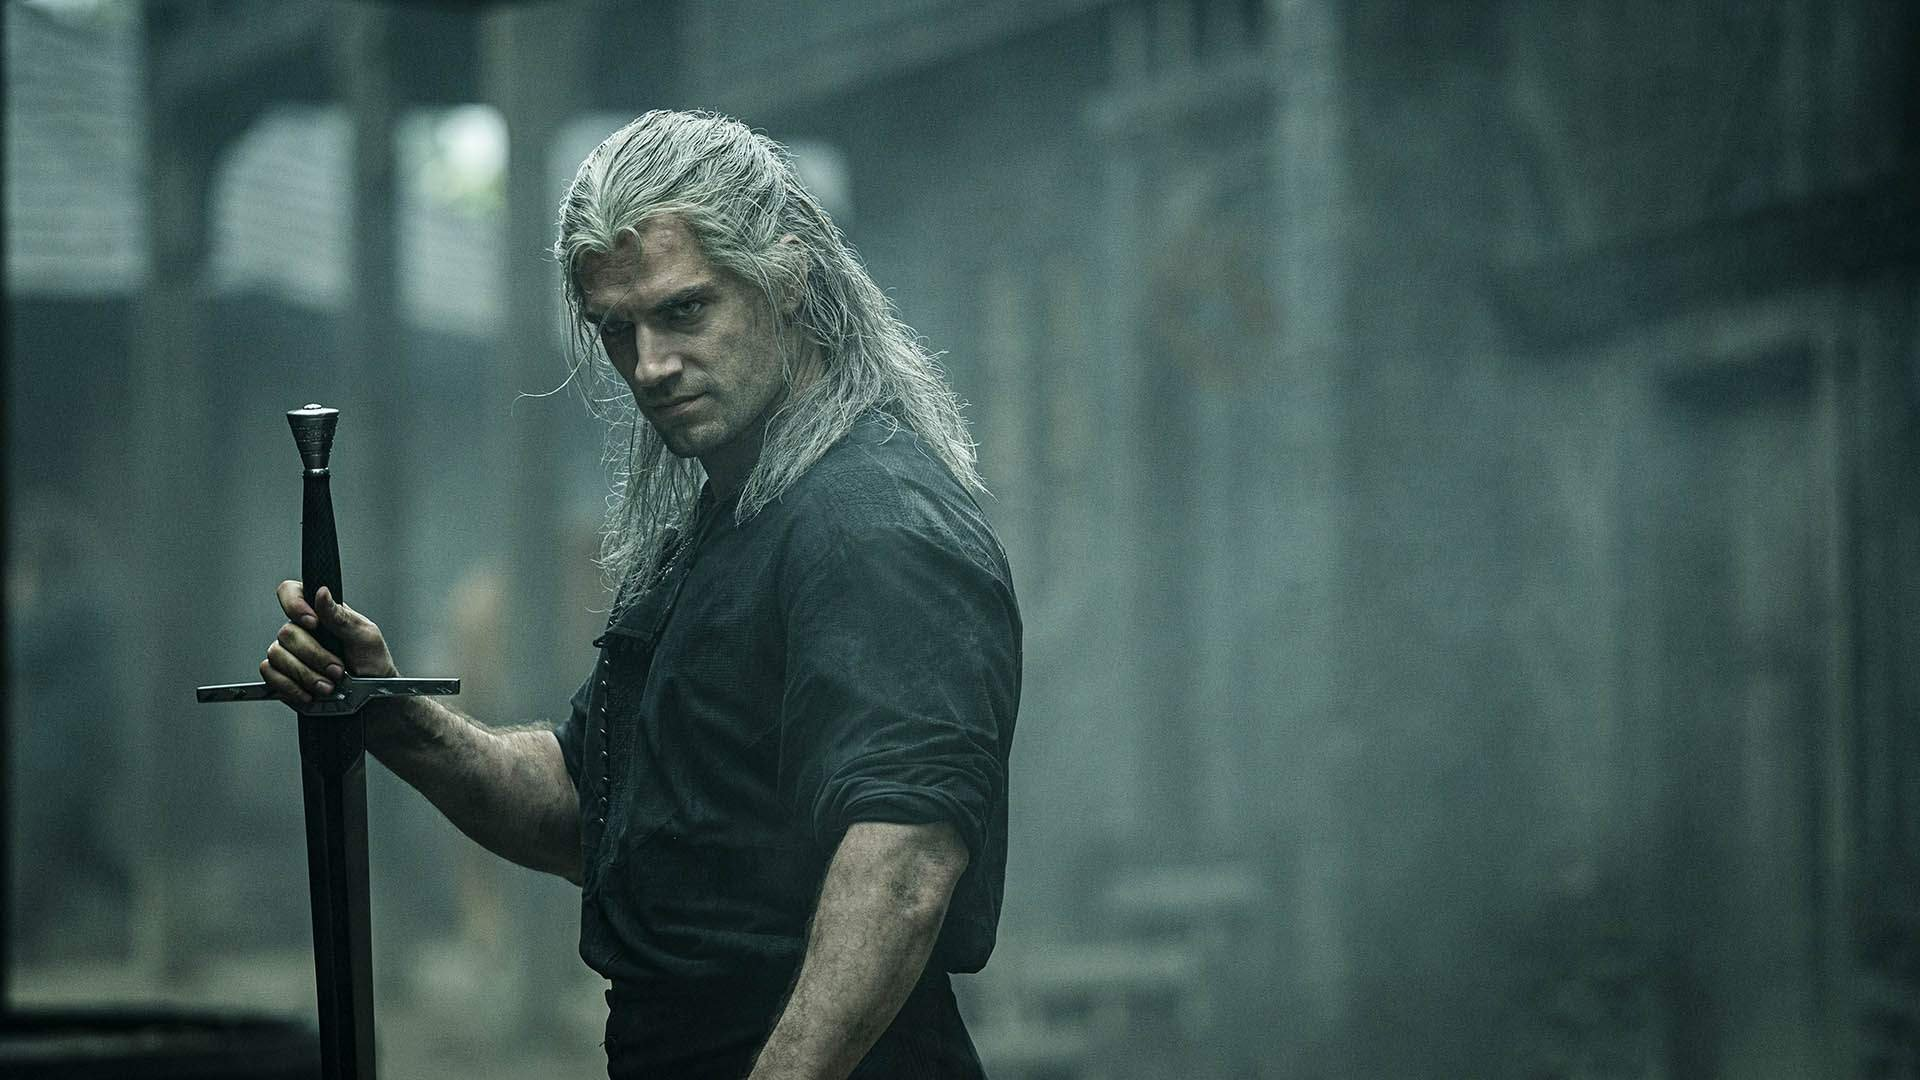 The Witcher Netflix wallpaper picture hd